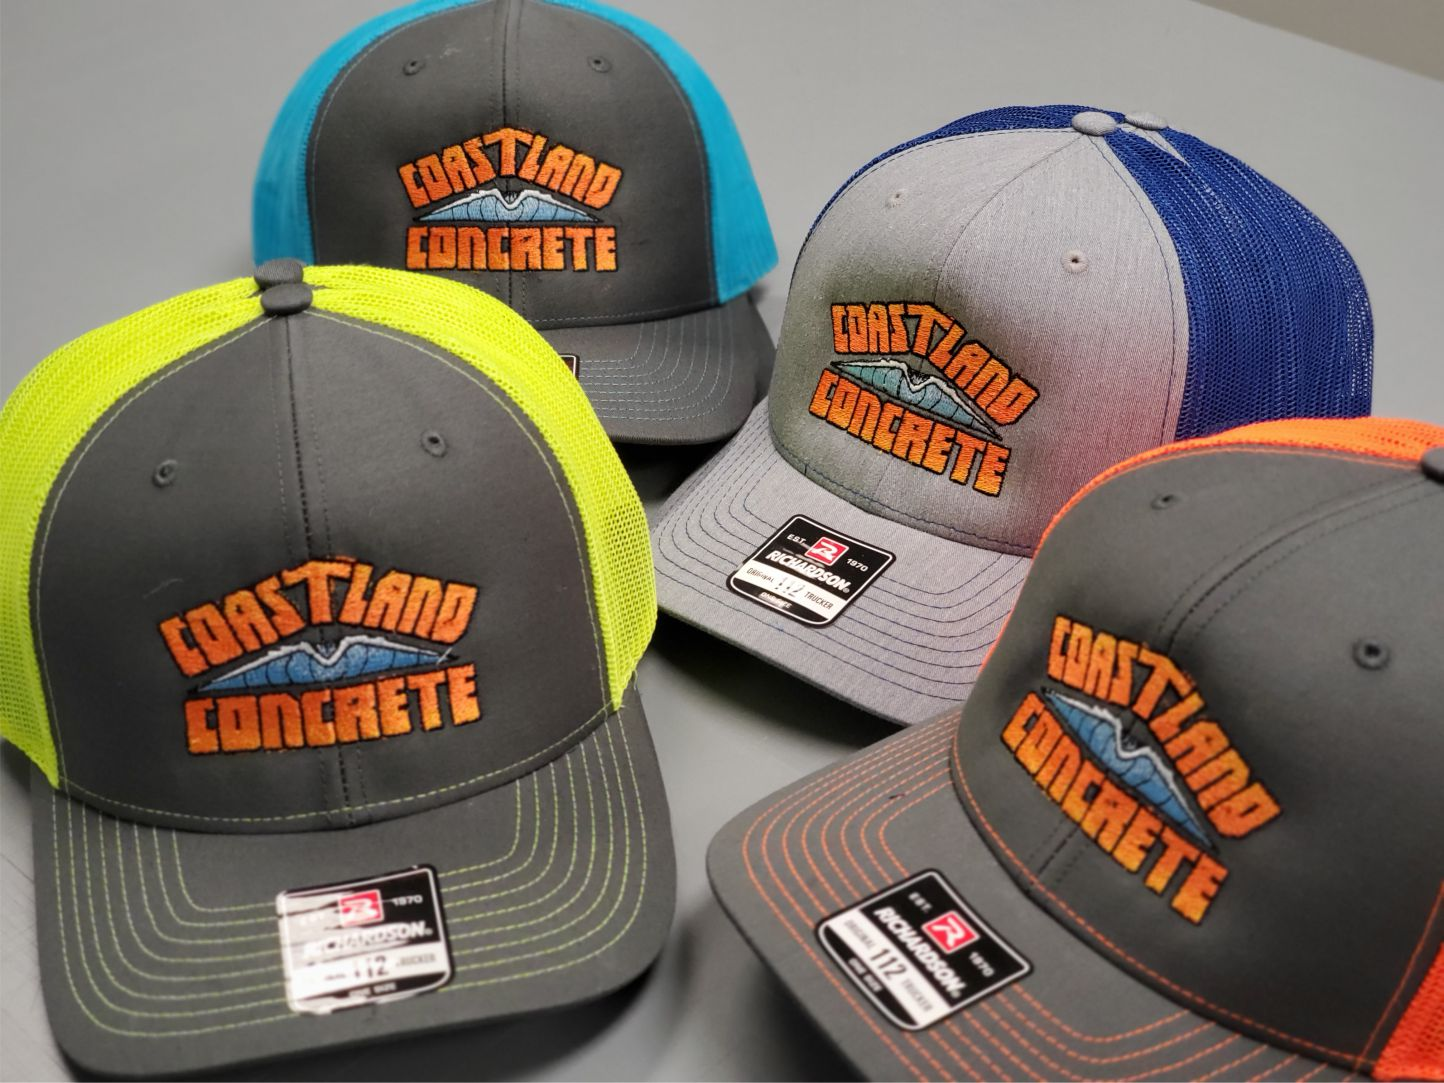 Coastland Concrete Hats